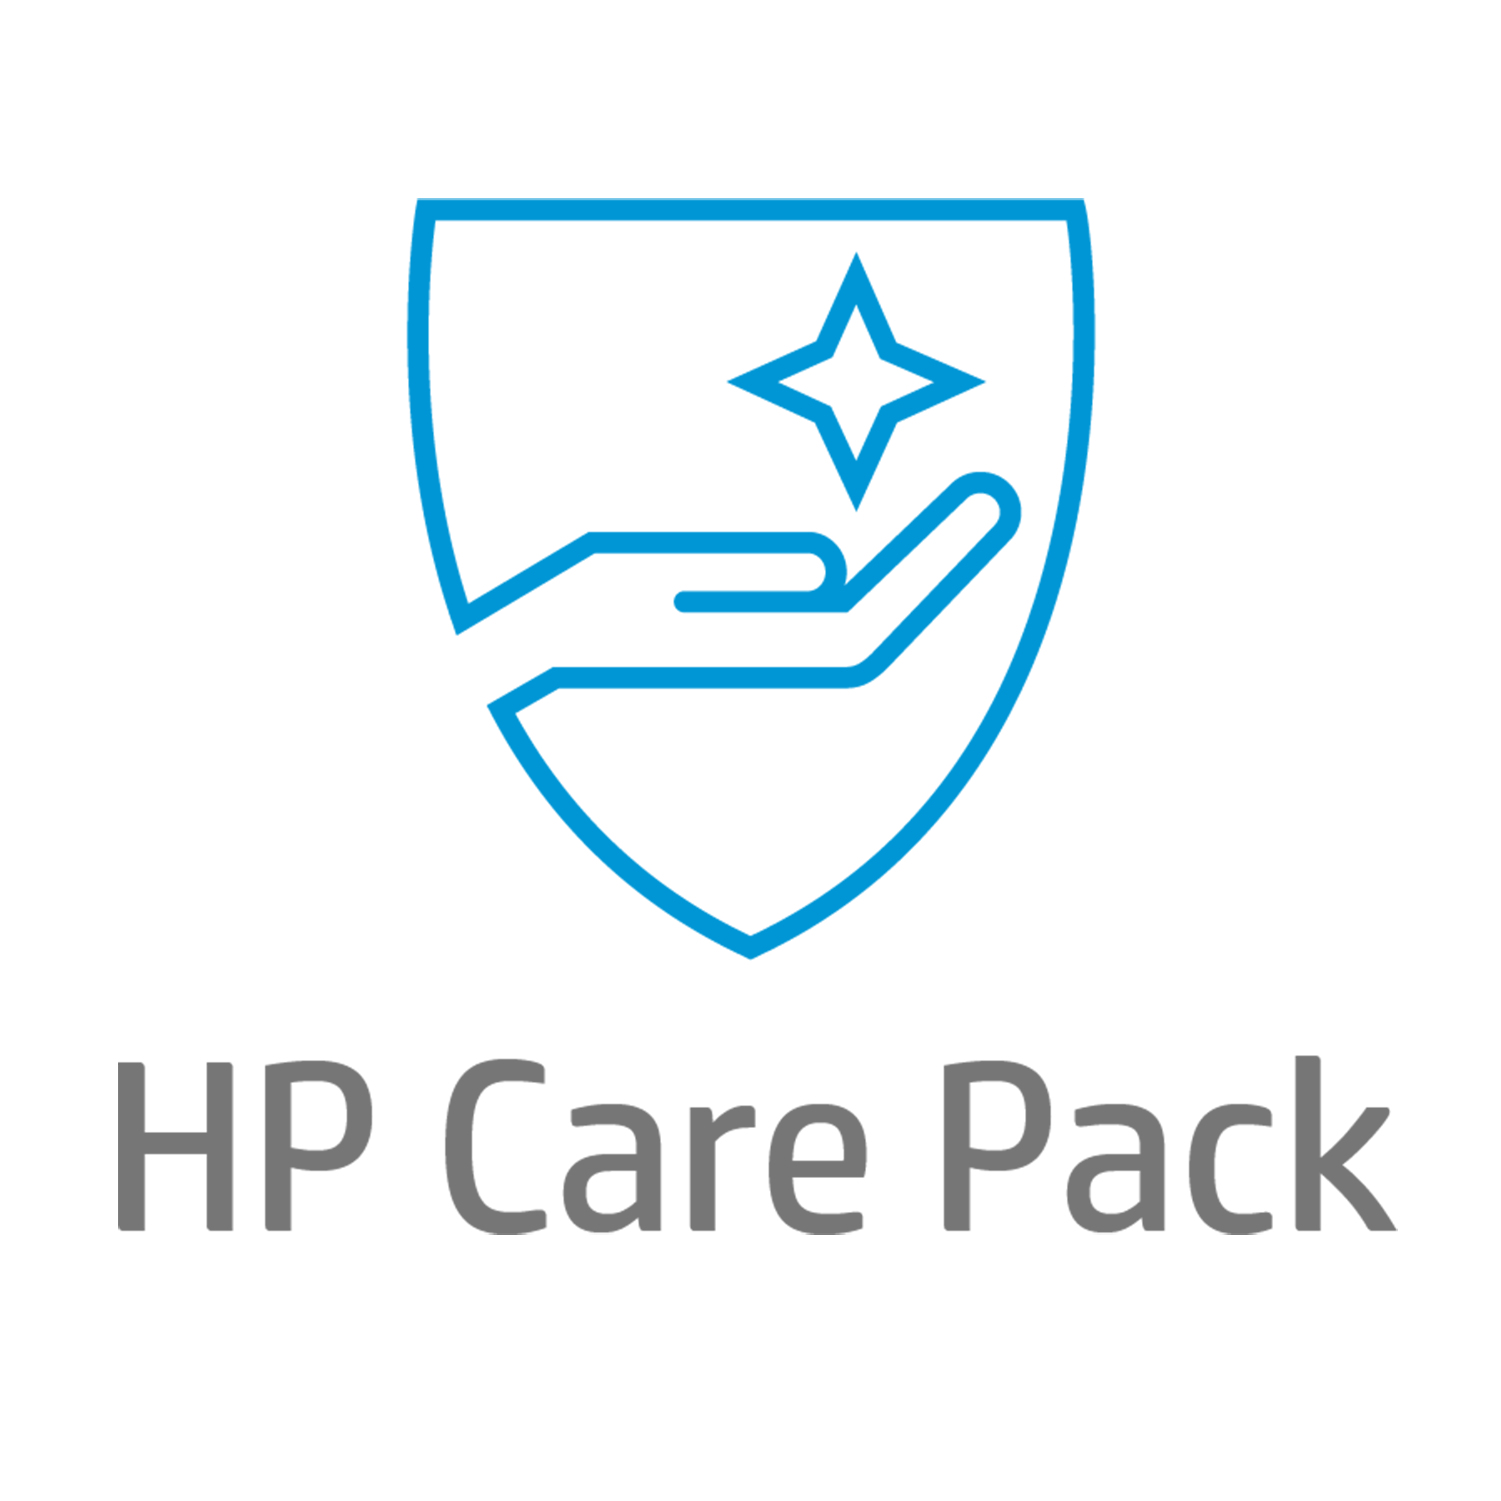 HP 3y Premium Care Notebook Service